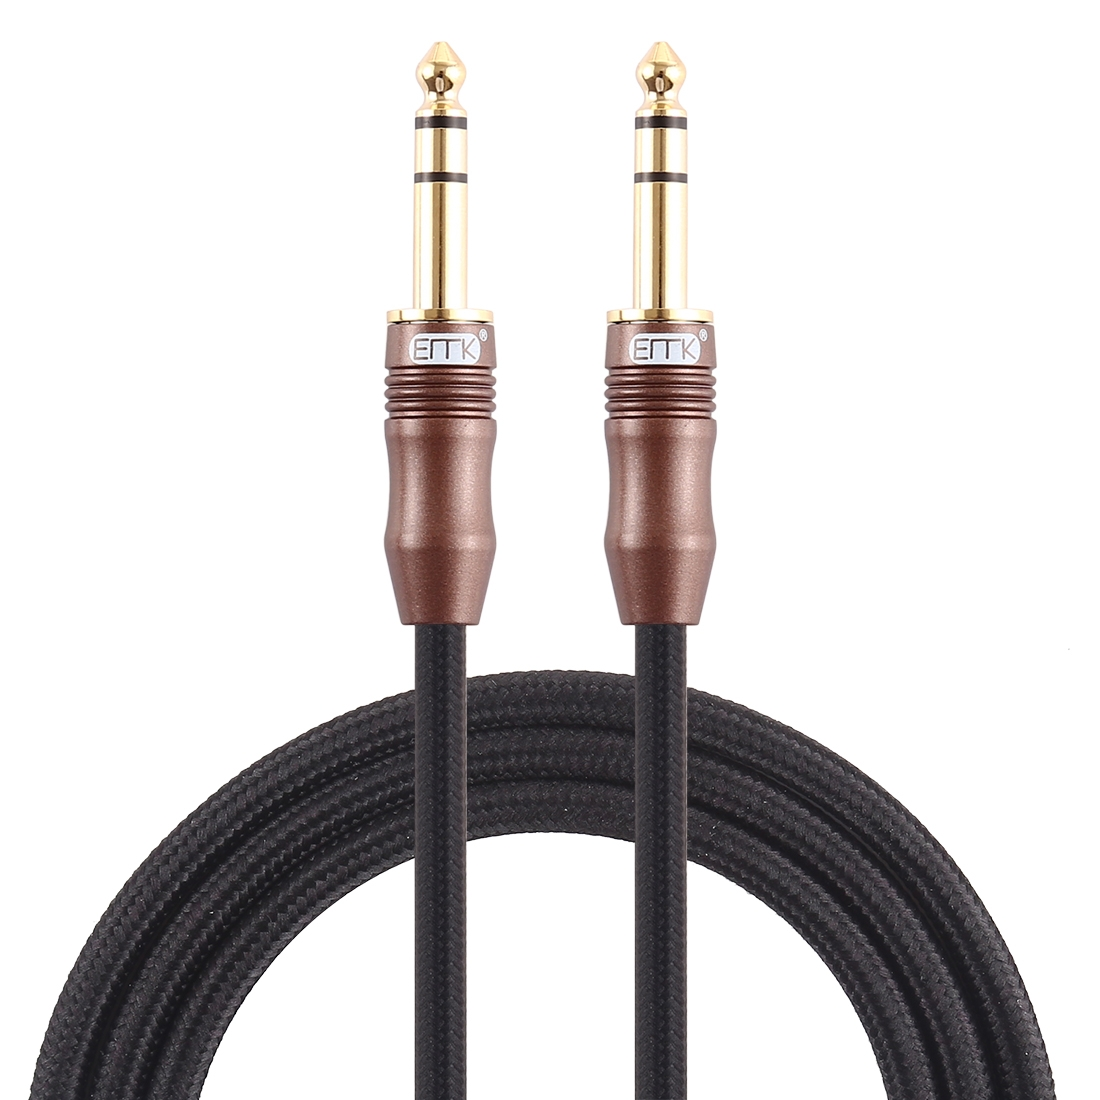 EMK 6.35mm Male to Male 4 Section Gold-plated Plug Cotton Braided Audio Cable for Guitar Amplifier Mixer, Length: 2m (Black)